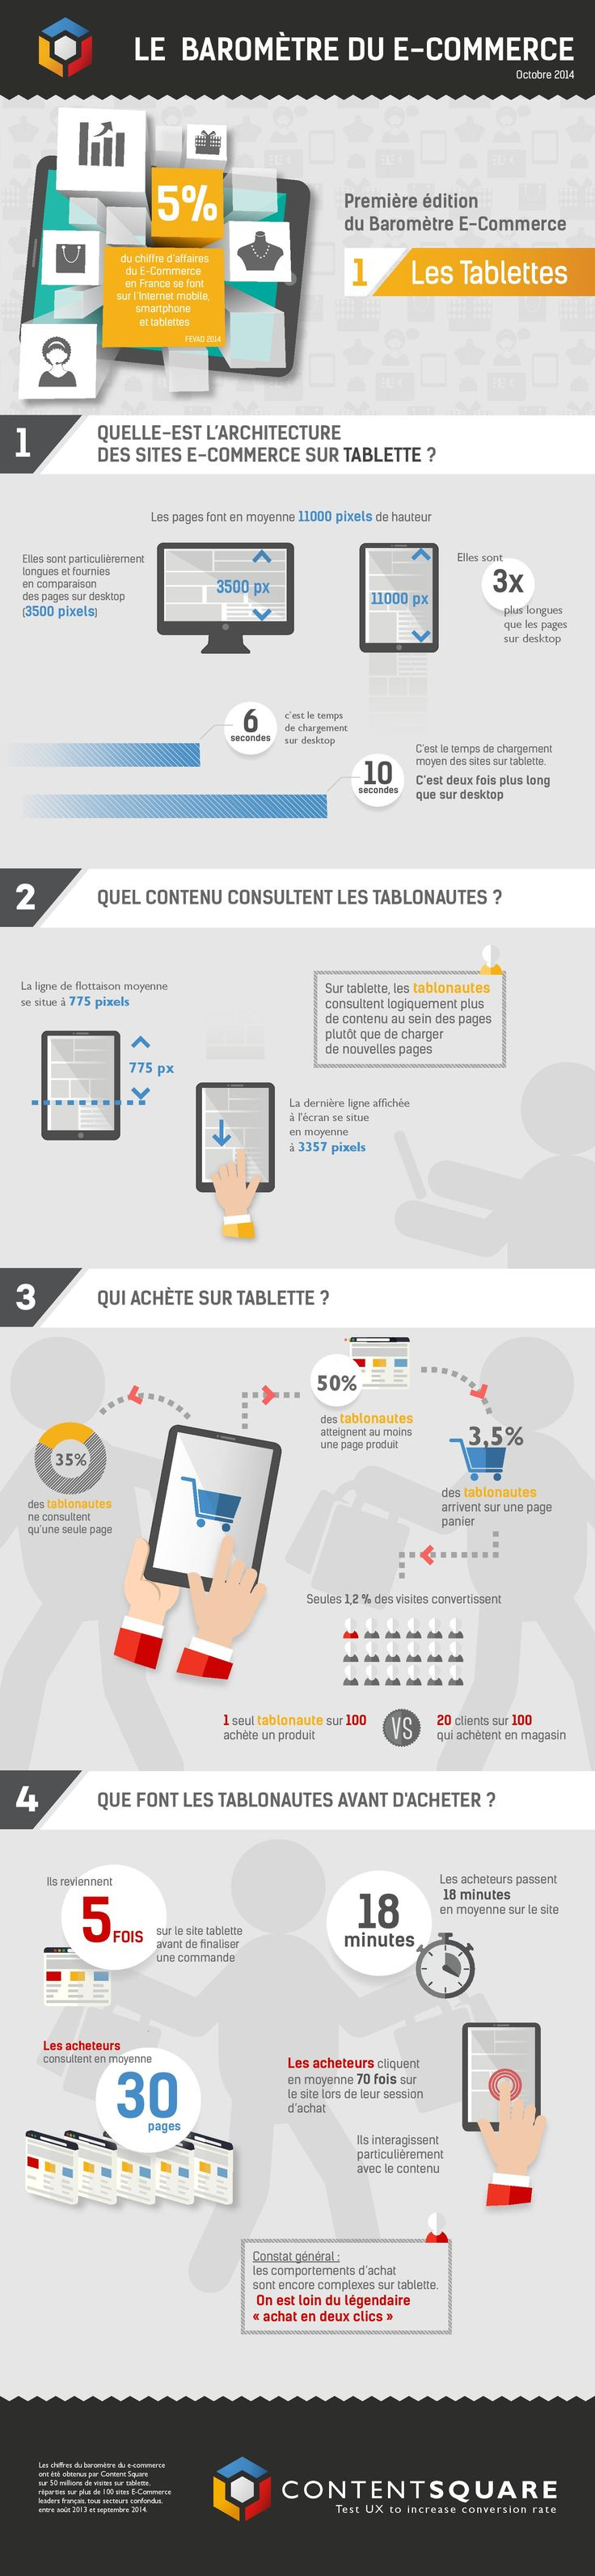 E-commerce France Barometer - October 2014 | Content Square [Infographic]